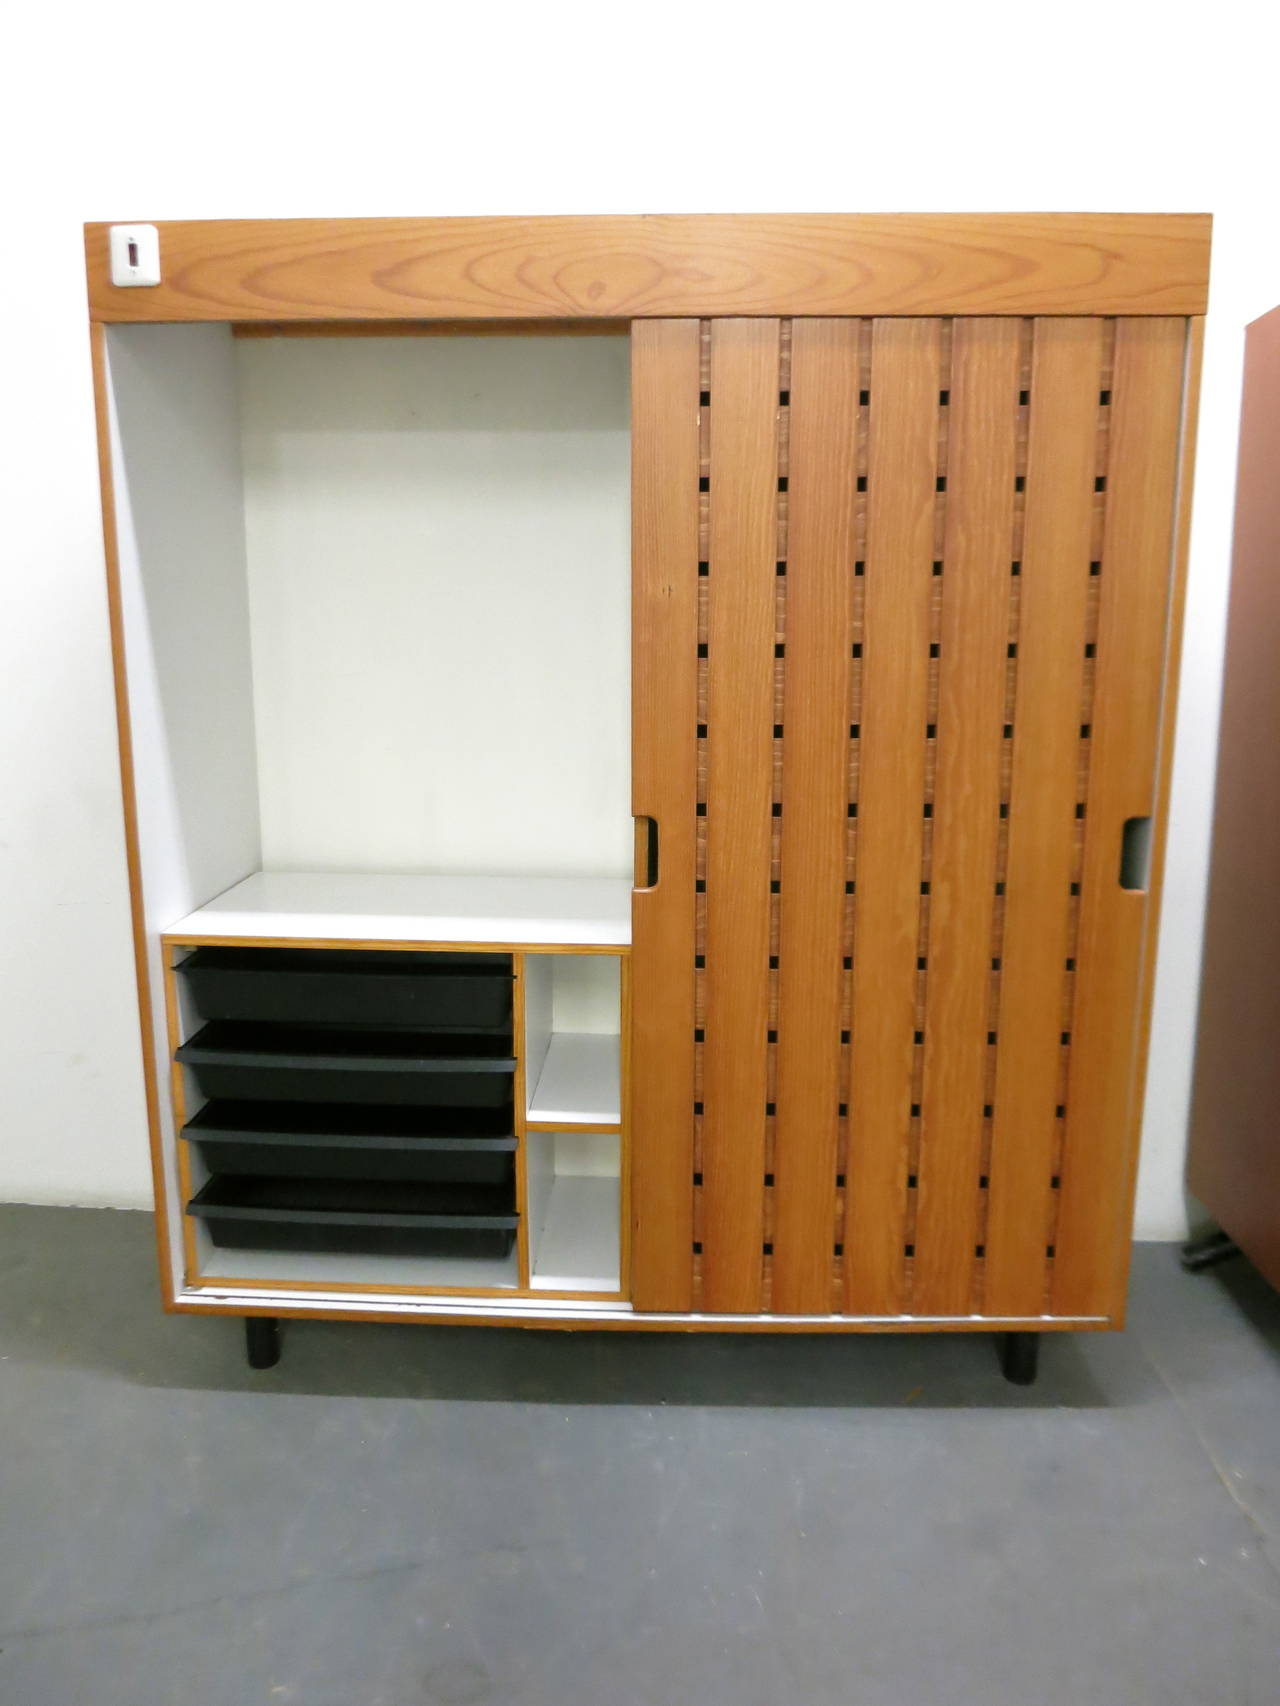 Mid-Century Modern Pair of Wardrobes by Charlotte Perriand, in 1967 for Les Arc Ski Lodge, France For Sale